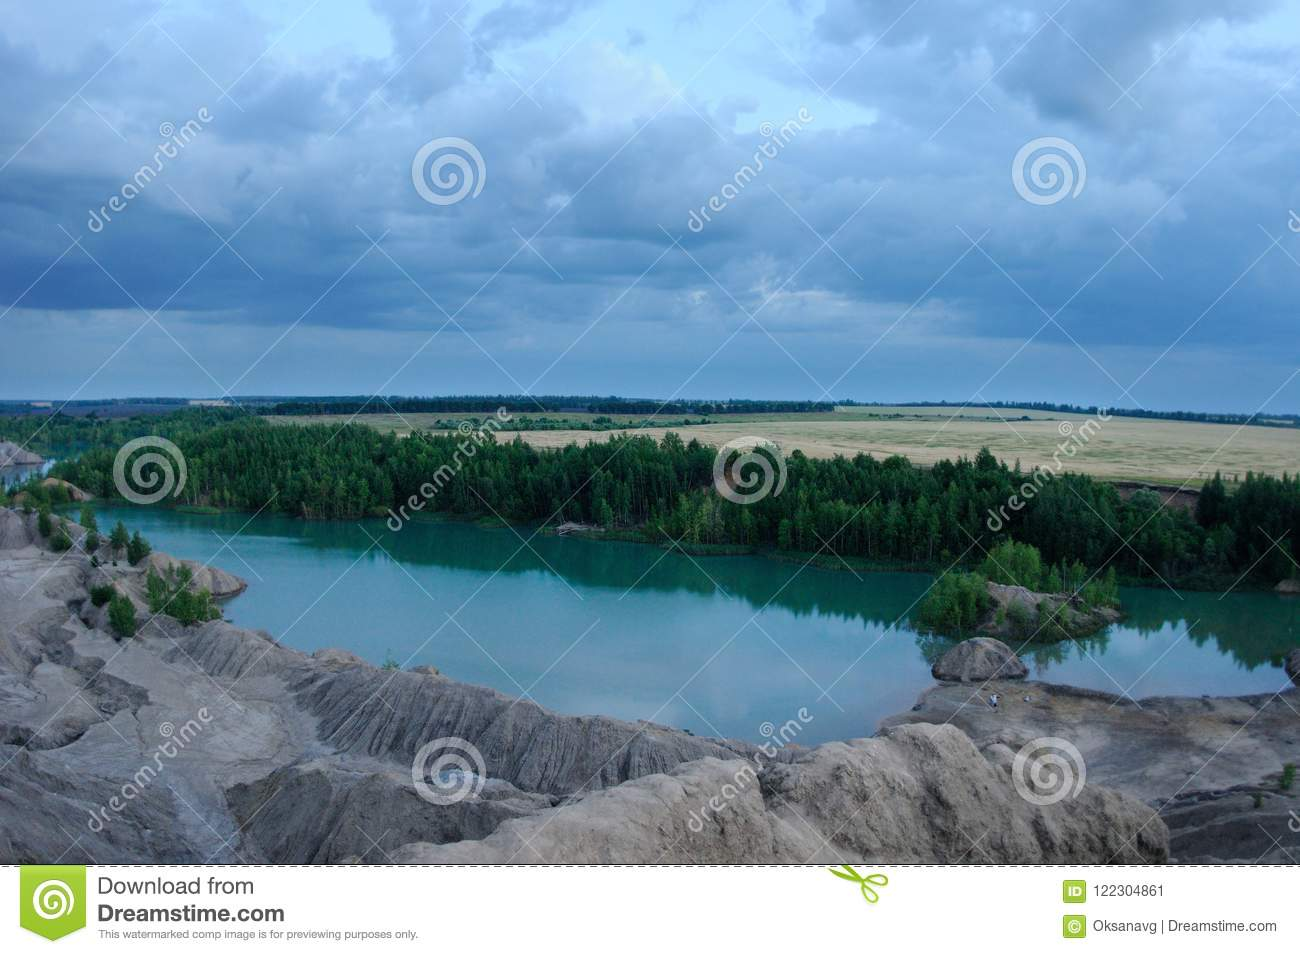 Old open pit